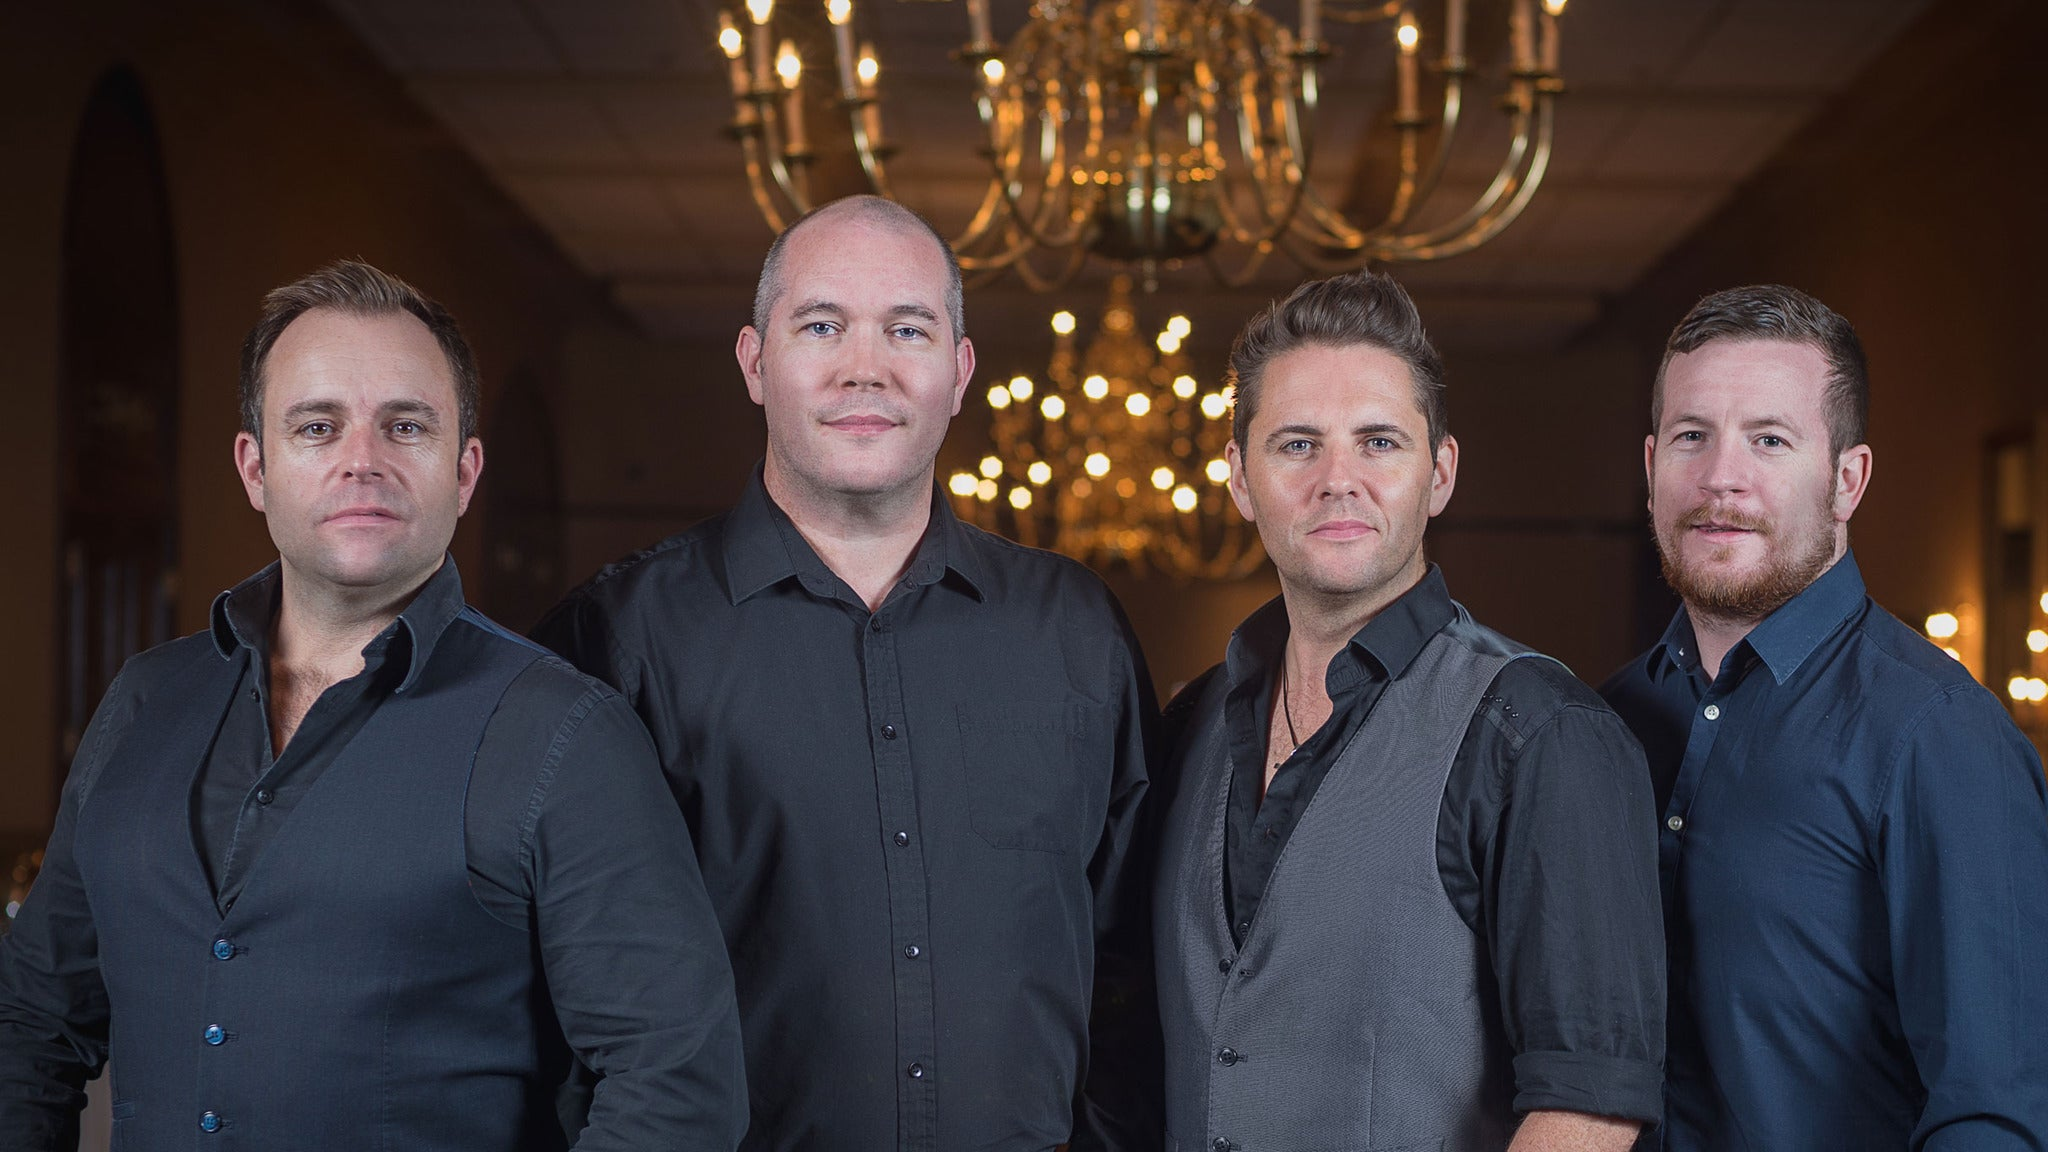 Celtic Music Association Presents The High Kings